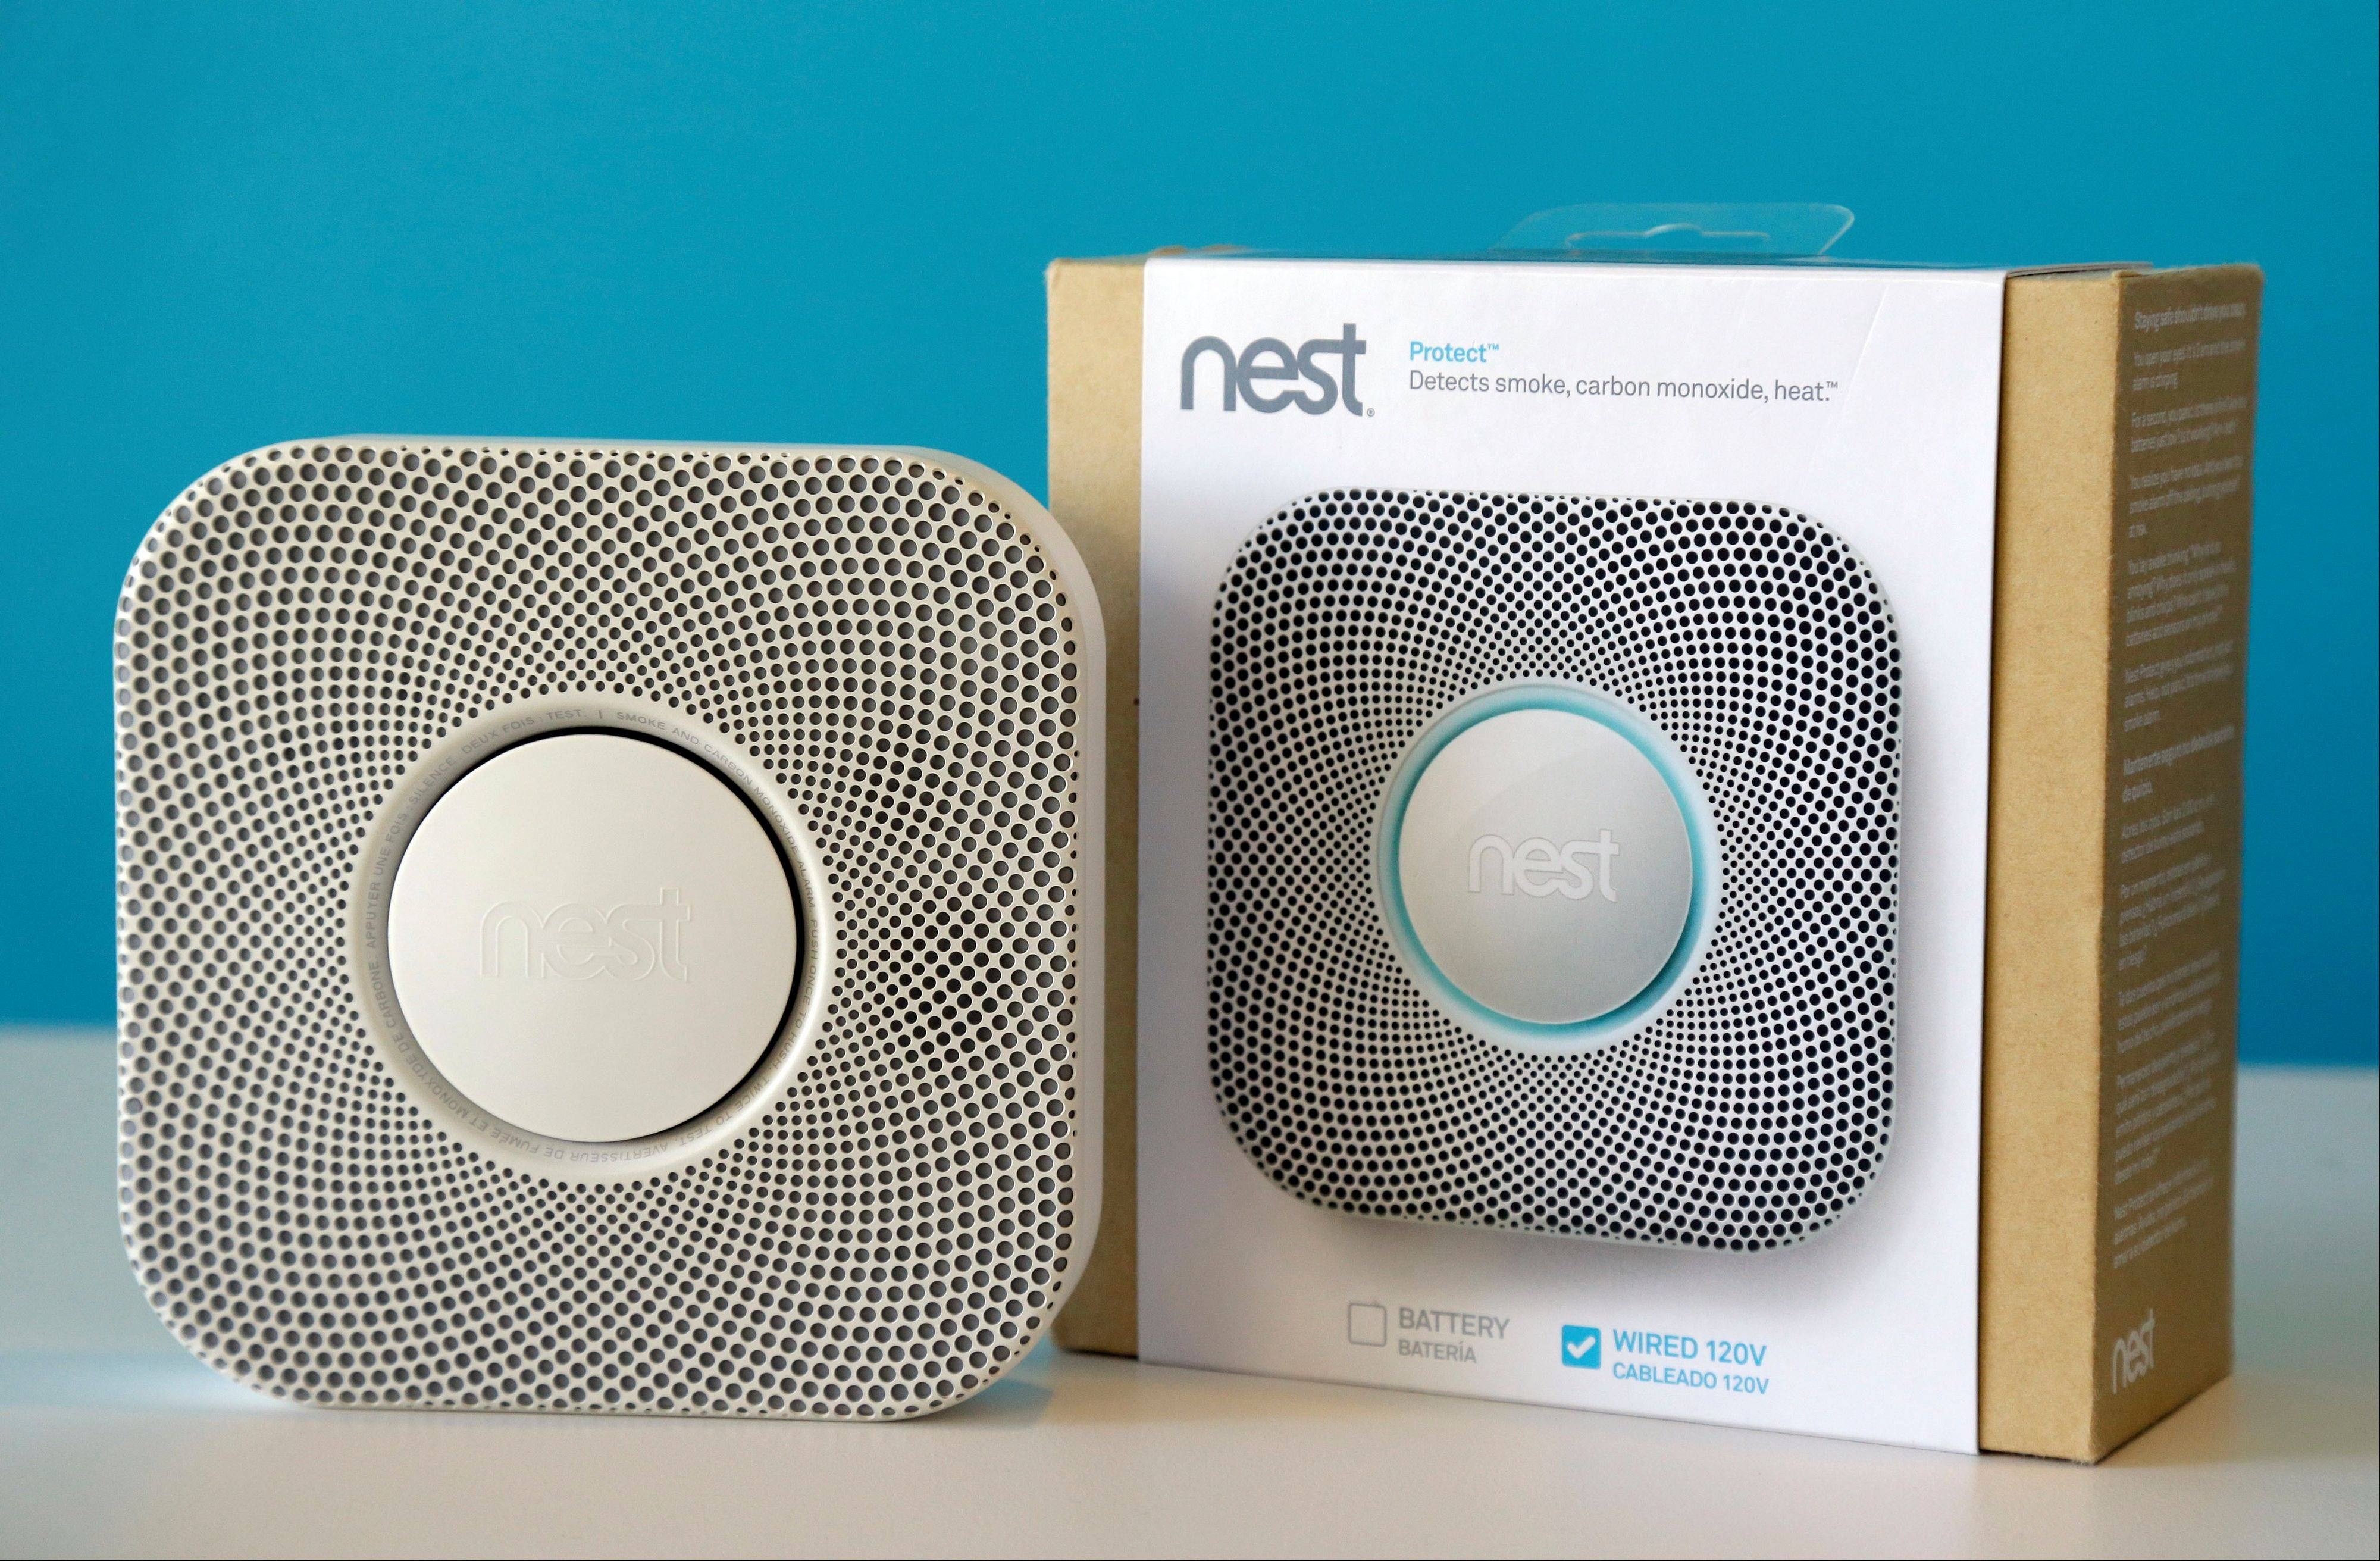 The Nest smoke and carbon monoxide alarm at the company�s offices, in Palo Alto, Calif.